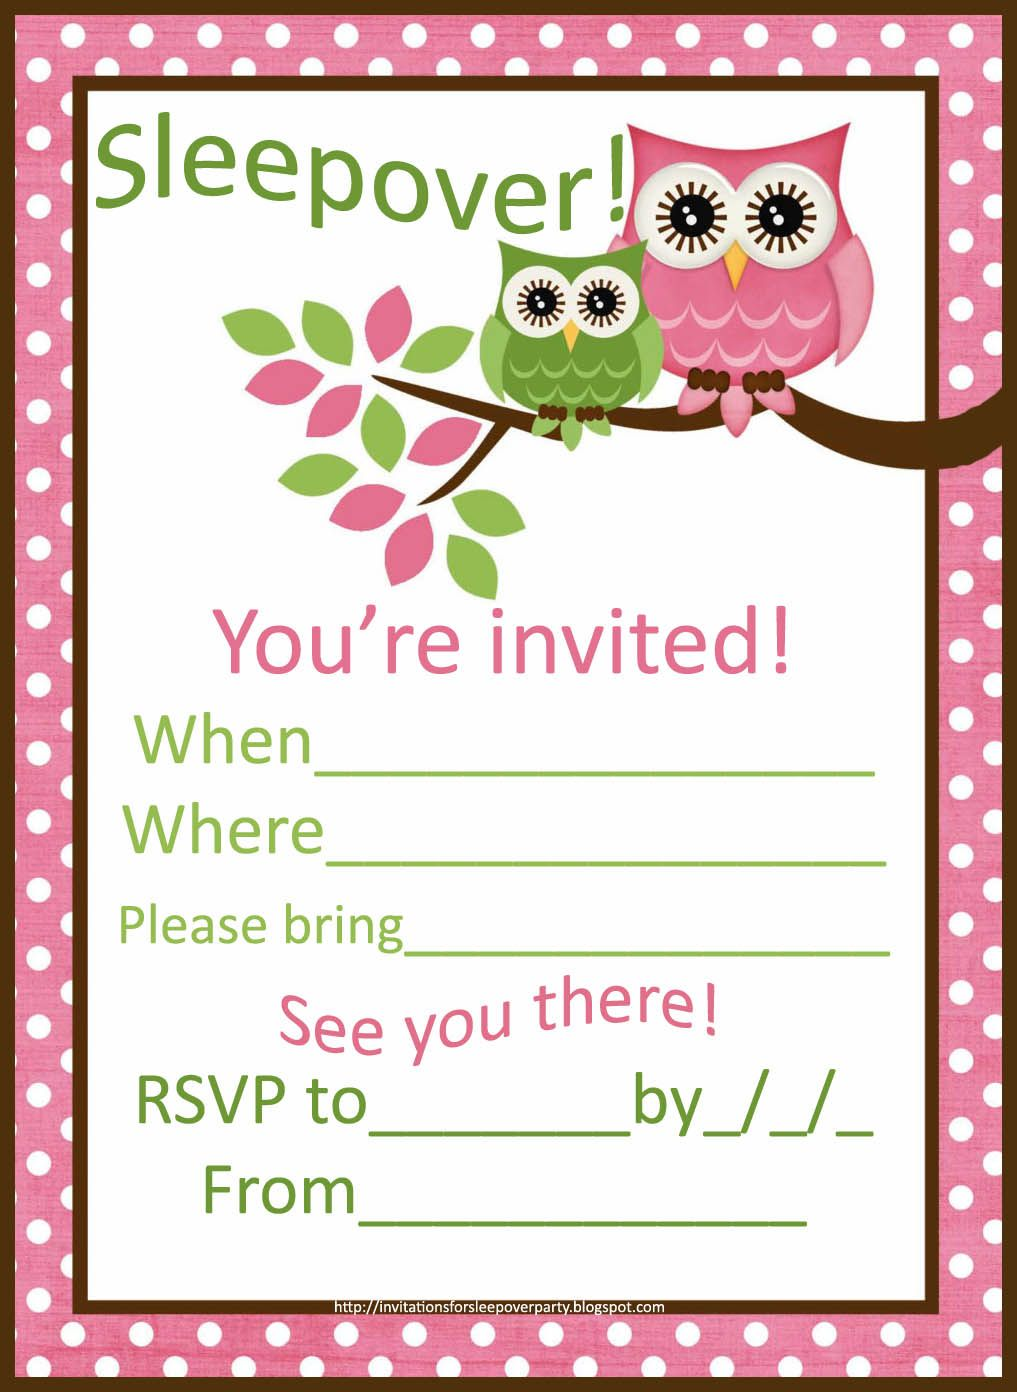 INVITATIONS FOR SLEEPOVER PARTY (With images) | Slumber party ...